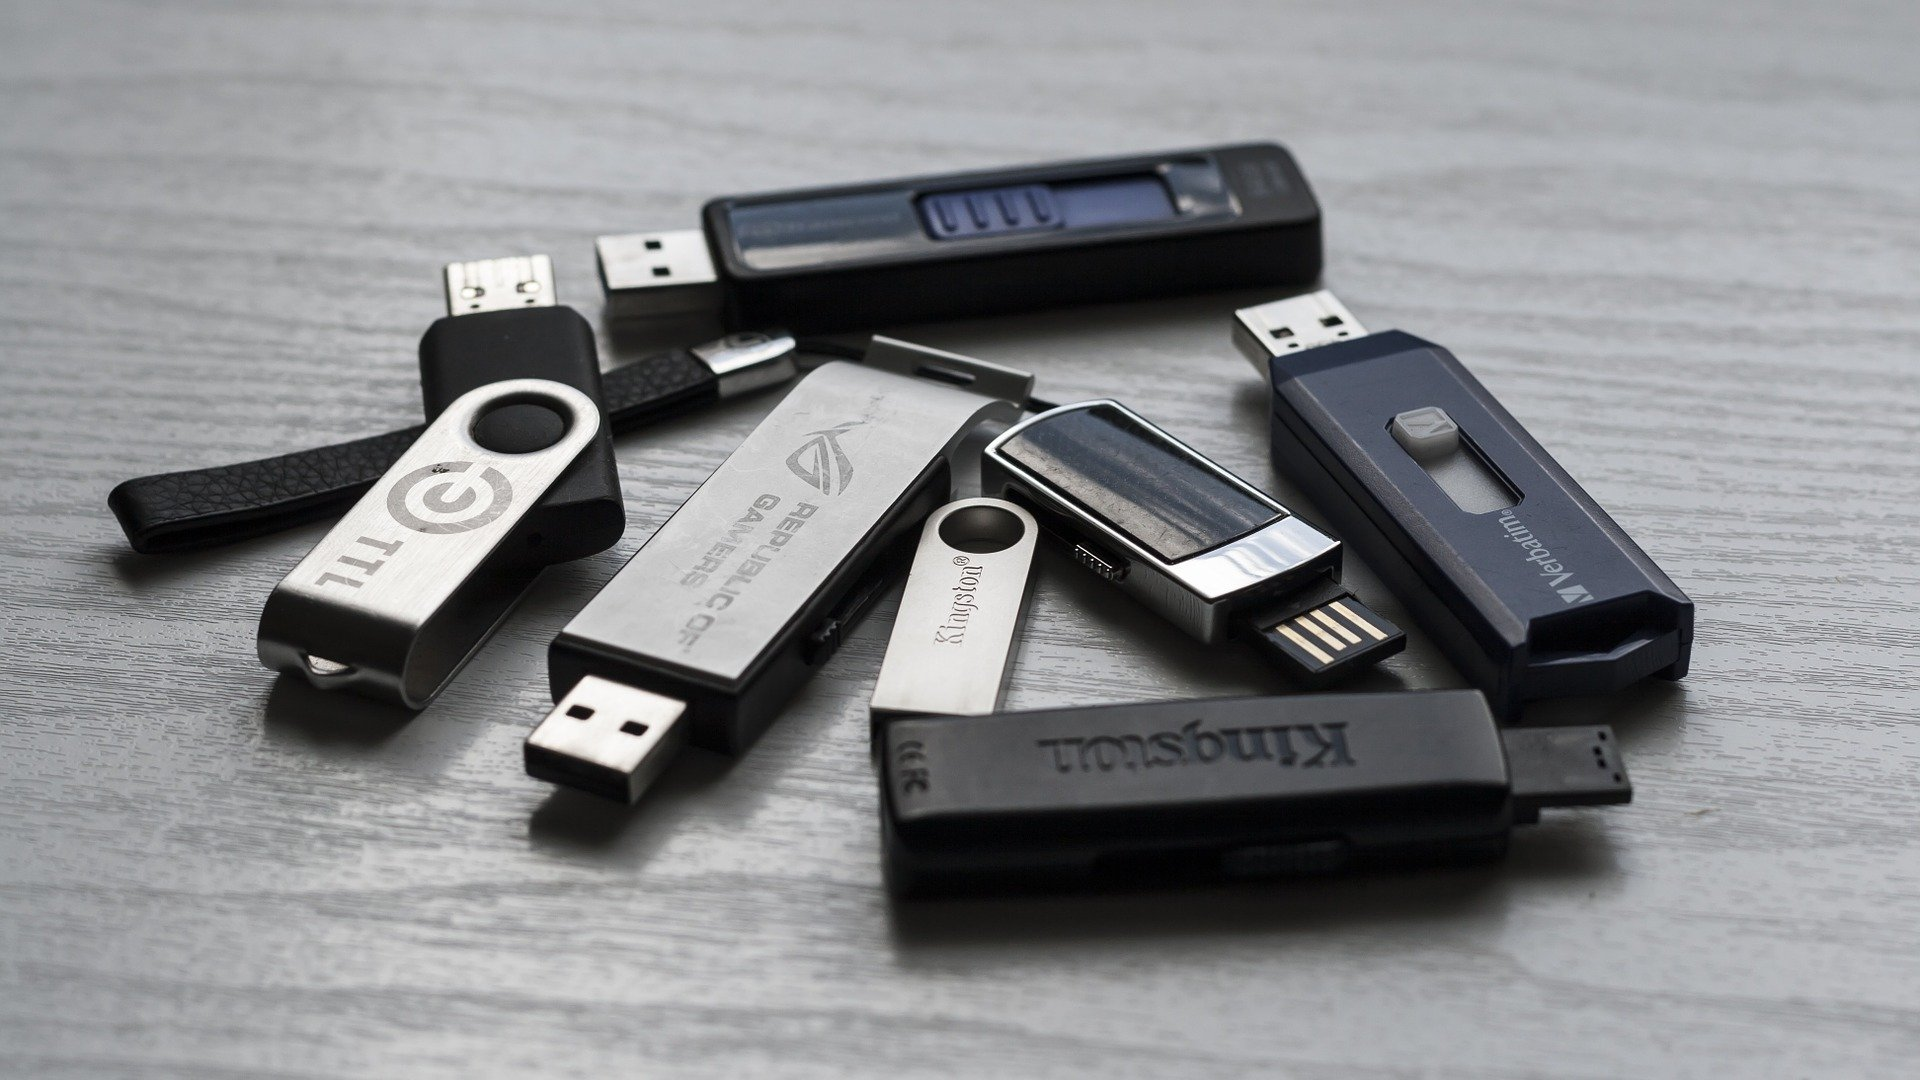 Researchers recover 75,000 'deleted' files from pre-owned USB drives